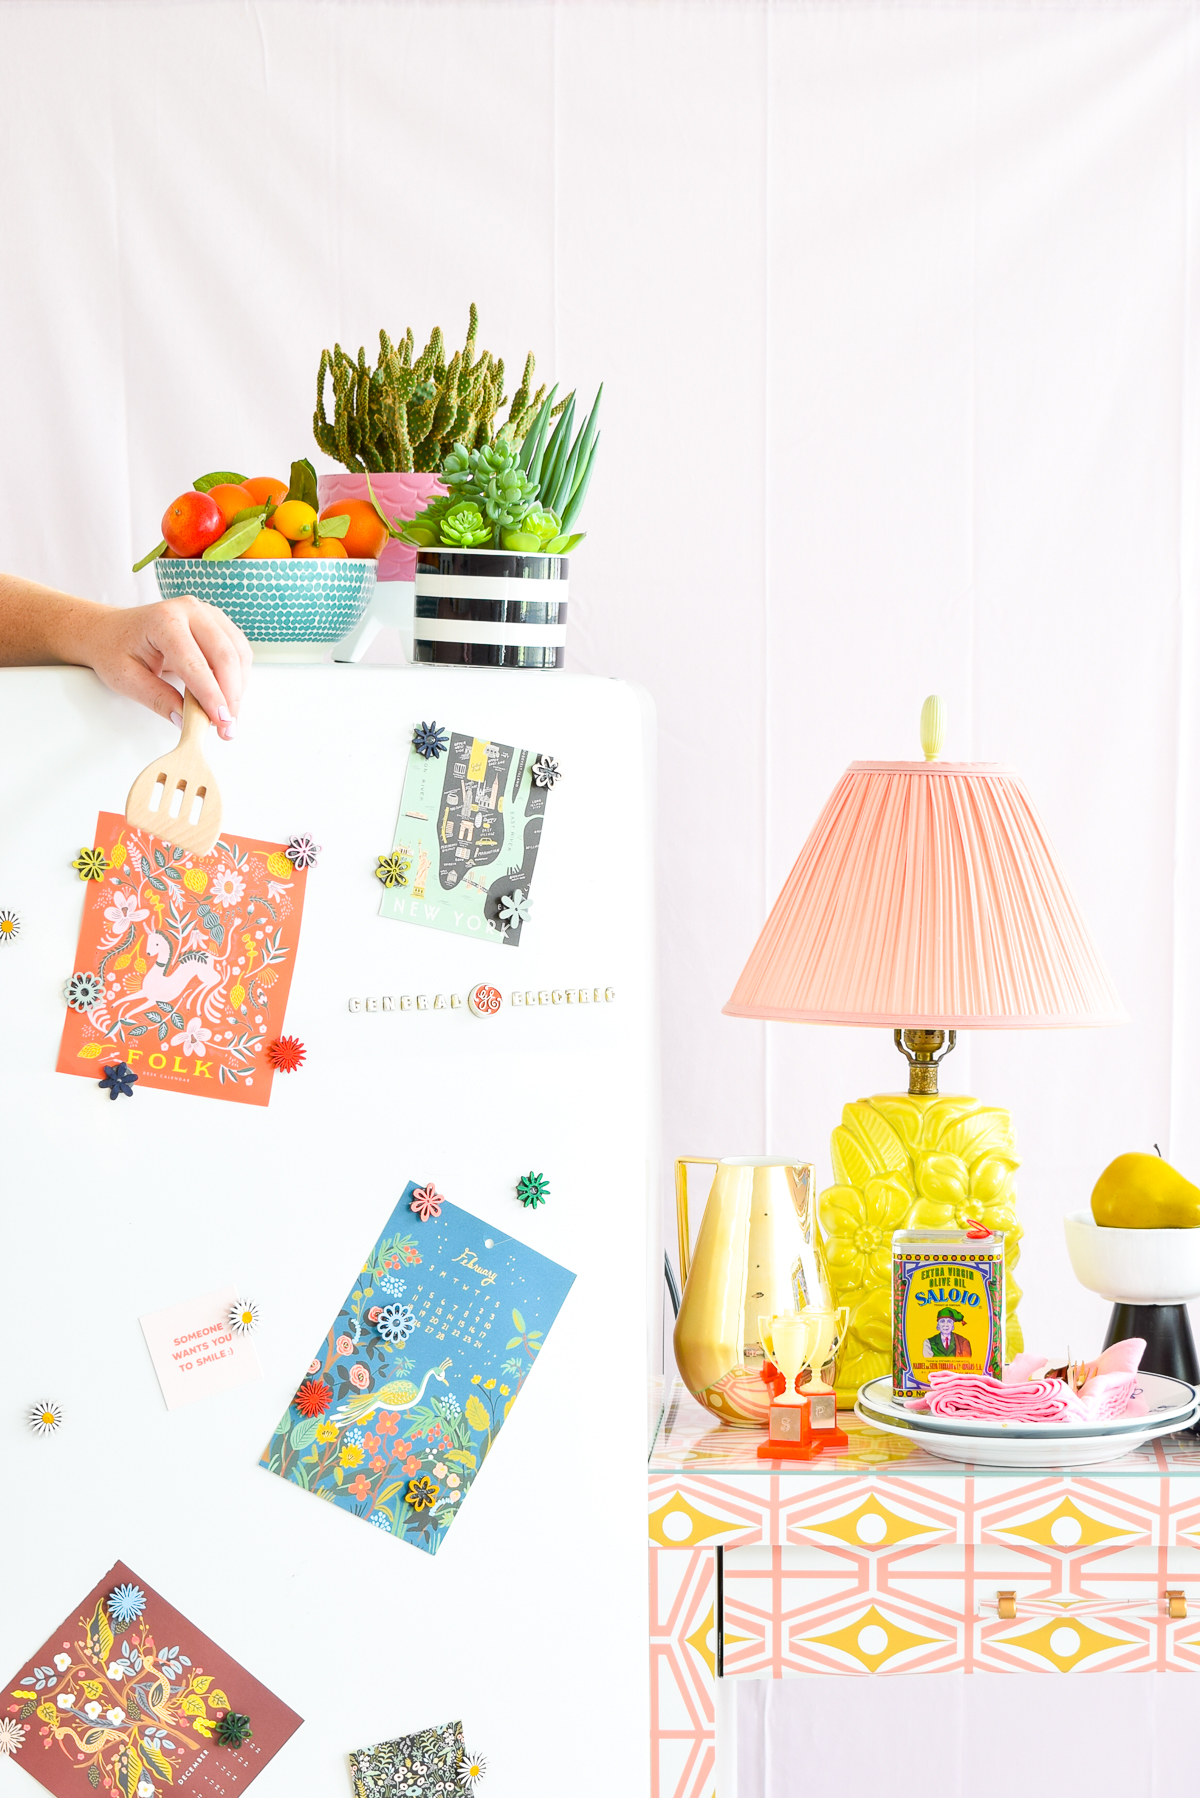 fridge and countertop in bright colors and patterns